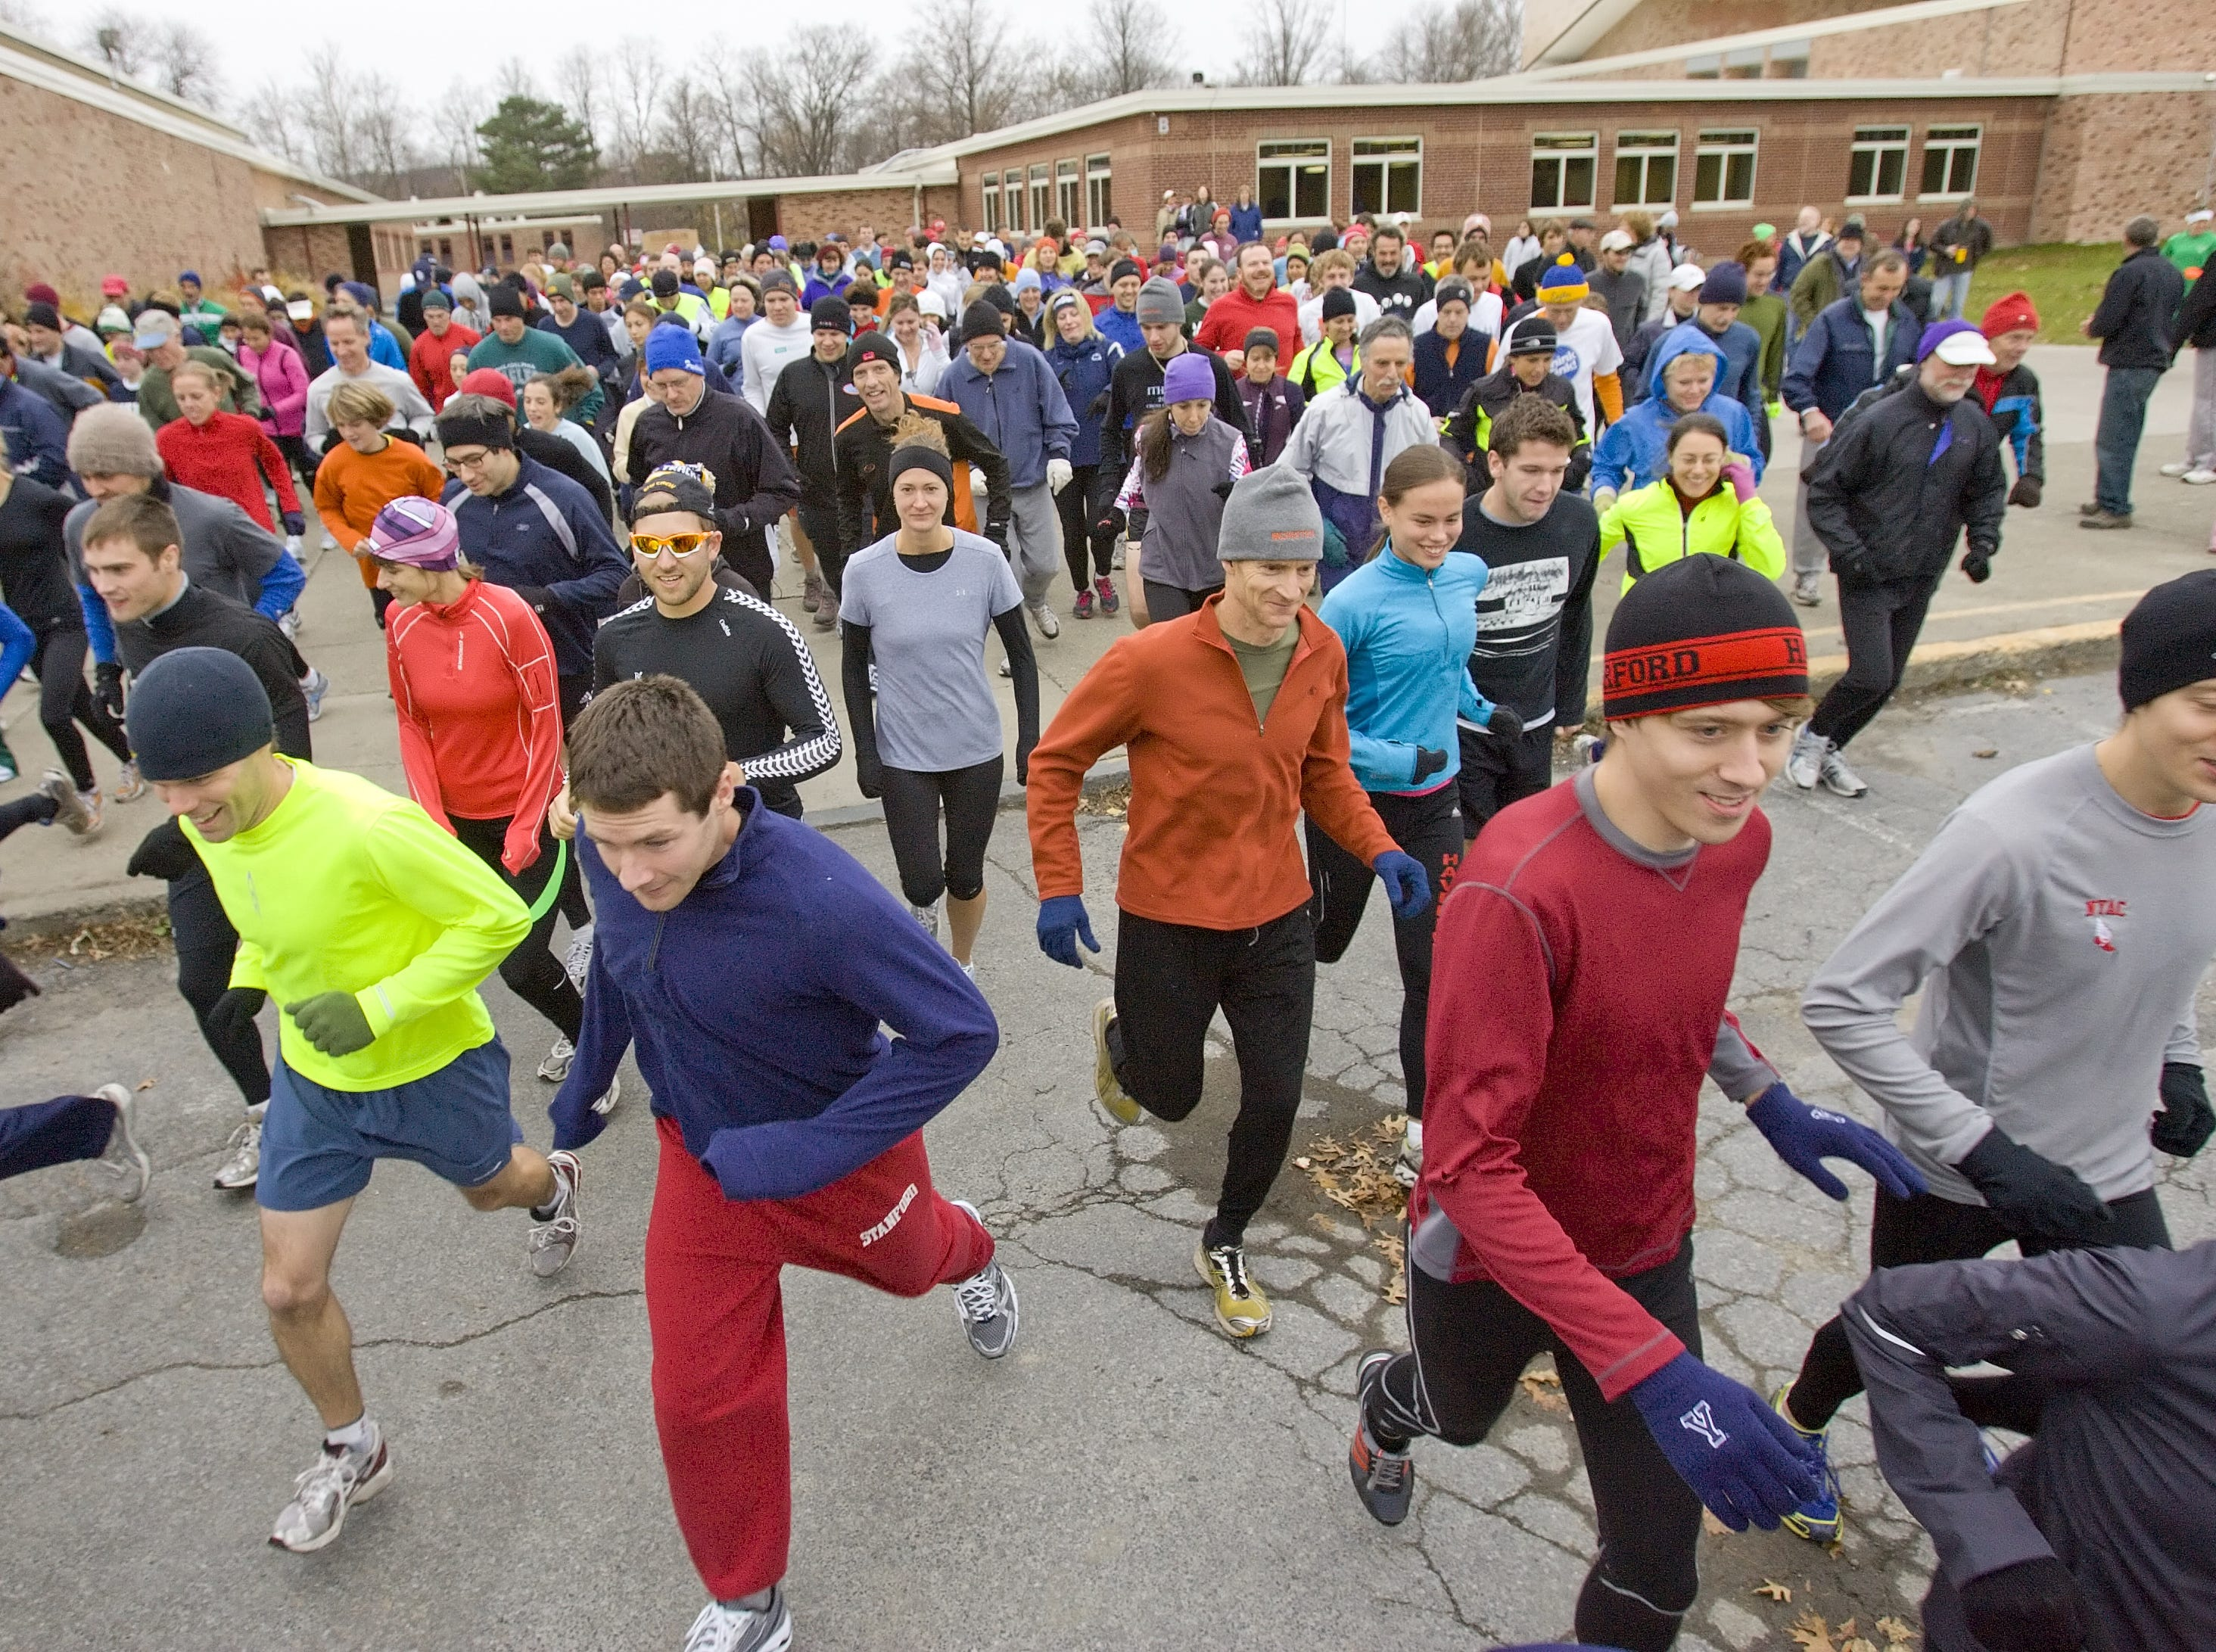 From 2010: Two hundred and seventy runners start off from Ithaca High School Thursday morning shortly after 9 a.m. for the 38th annual Turkey Trot. The event now also a benefit for Loaves and Fishes, awards pies to those who run the almost five-mile course closest to their predicted time.